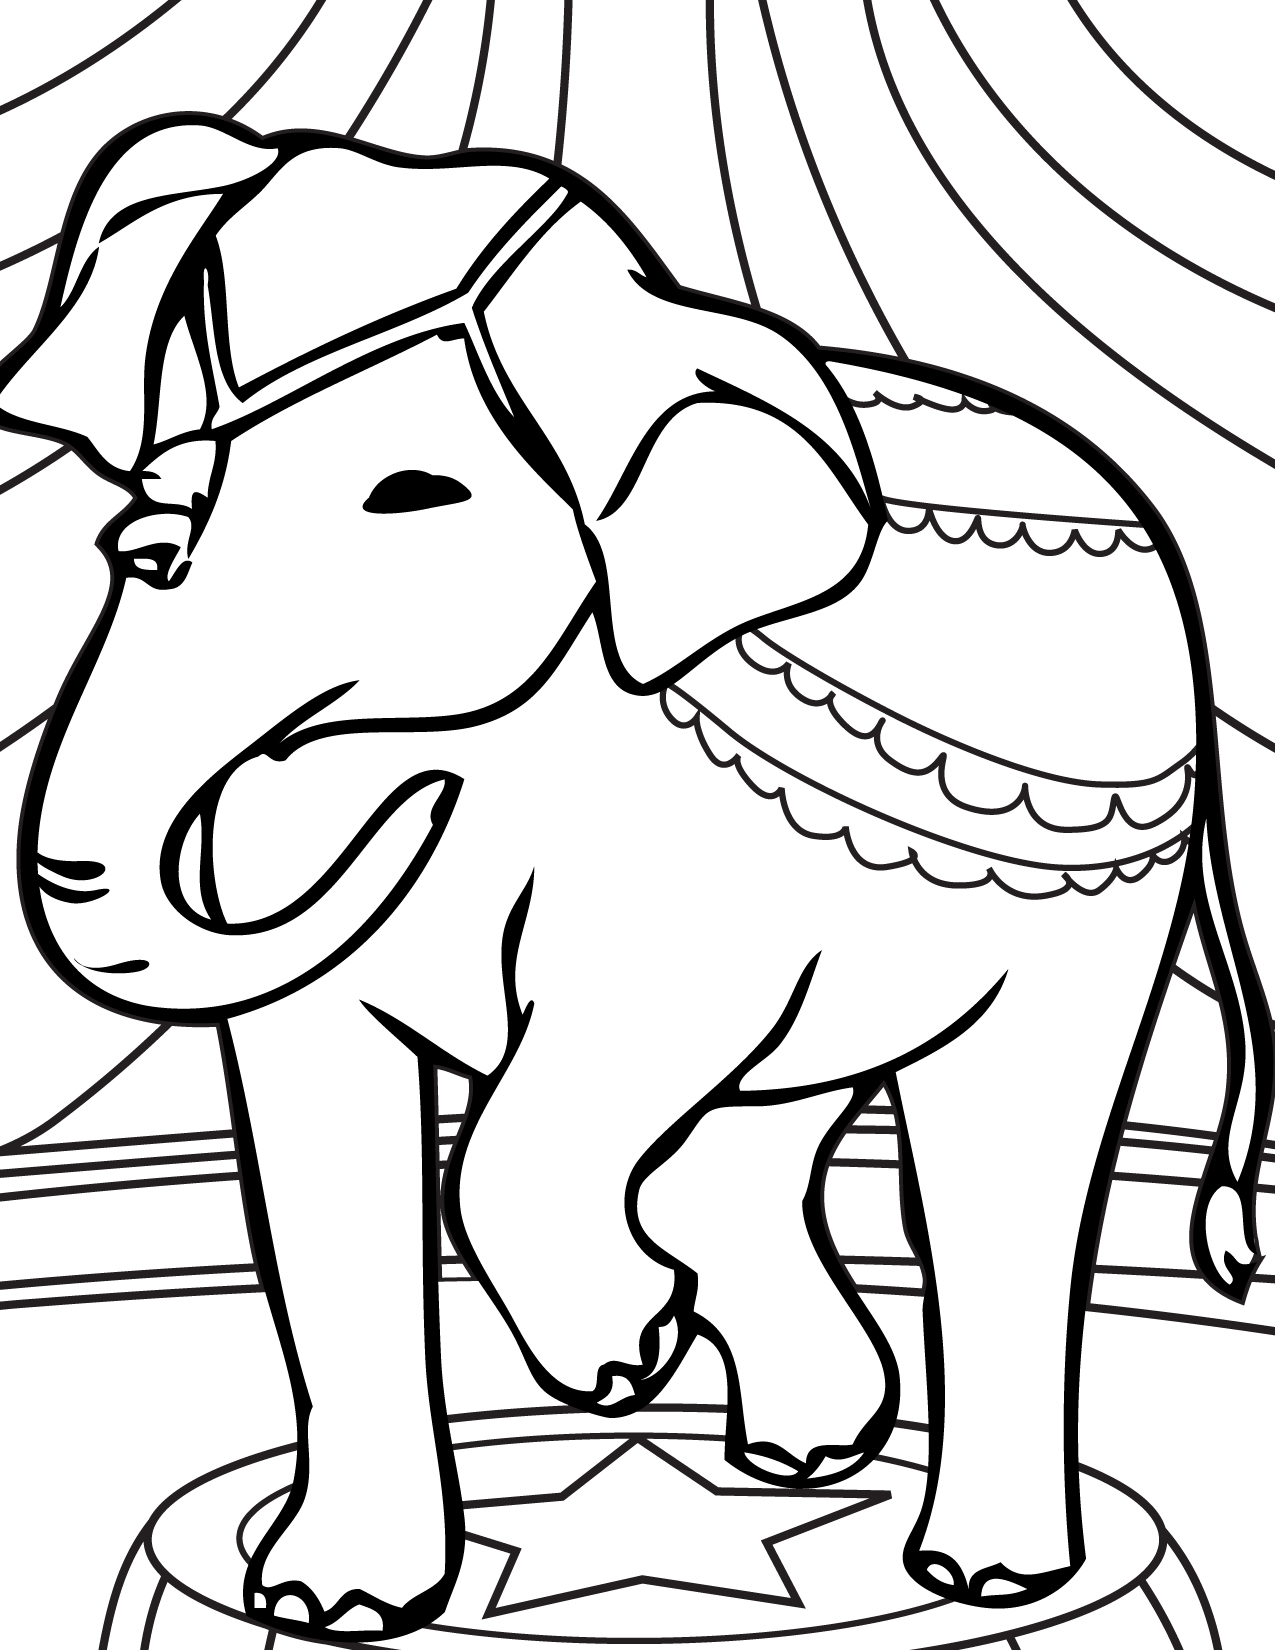 jpeg coloring pages - photo#4